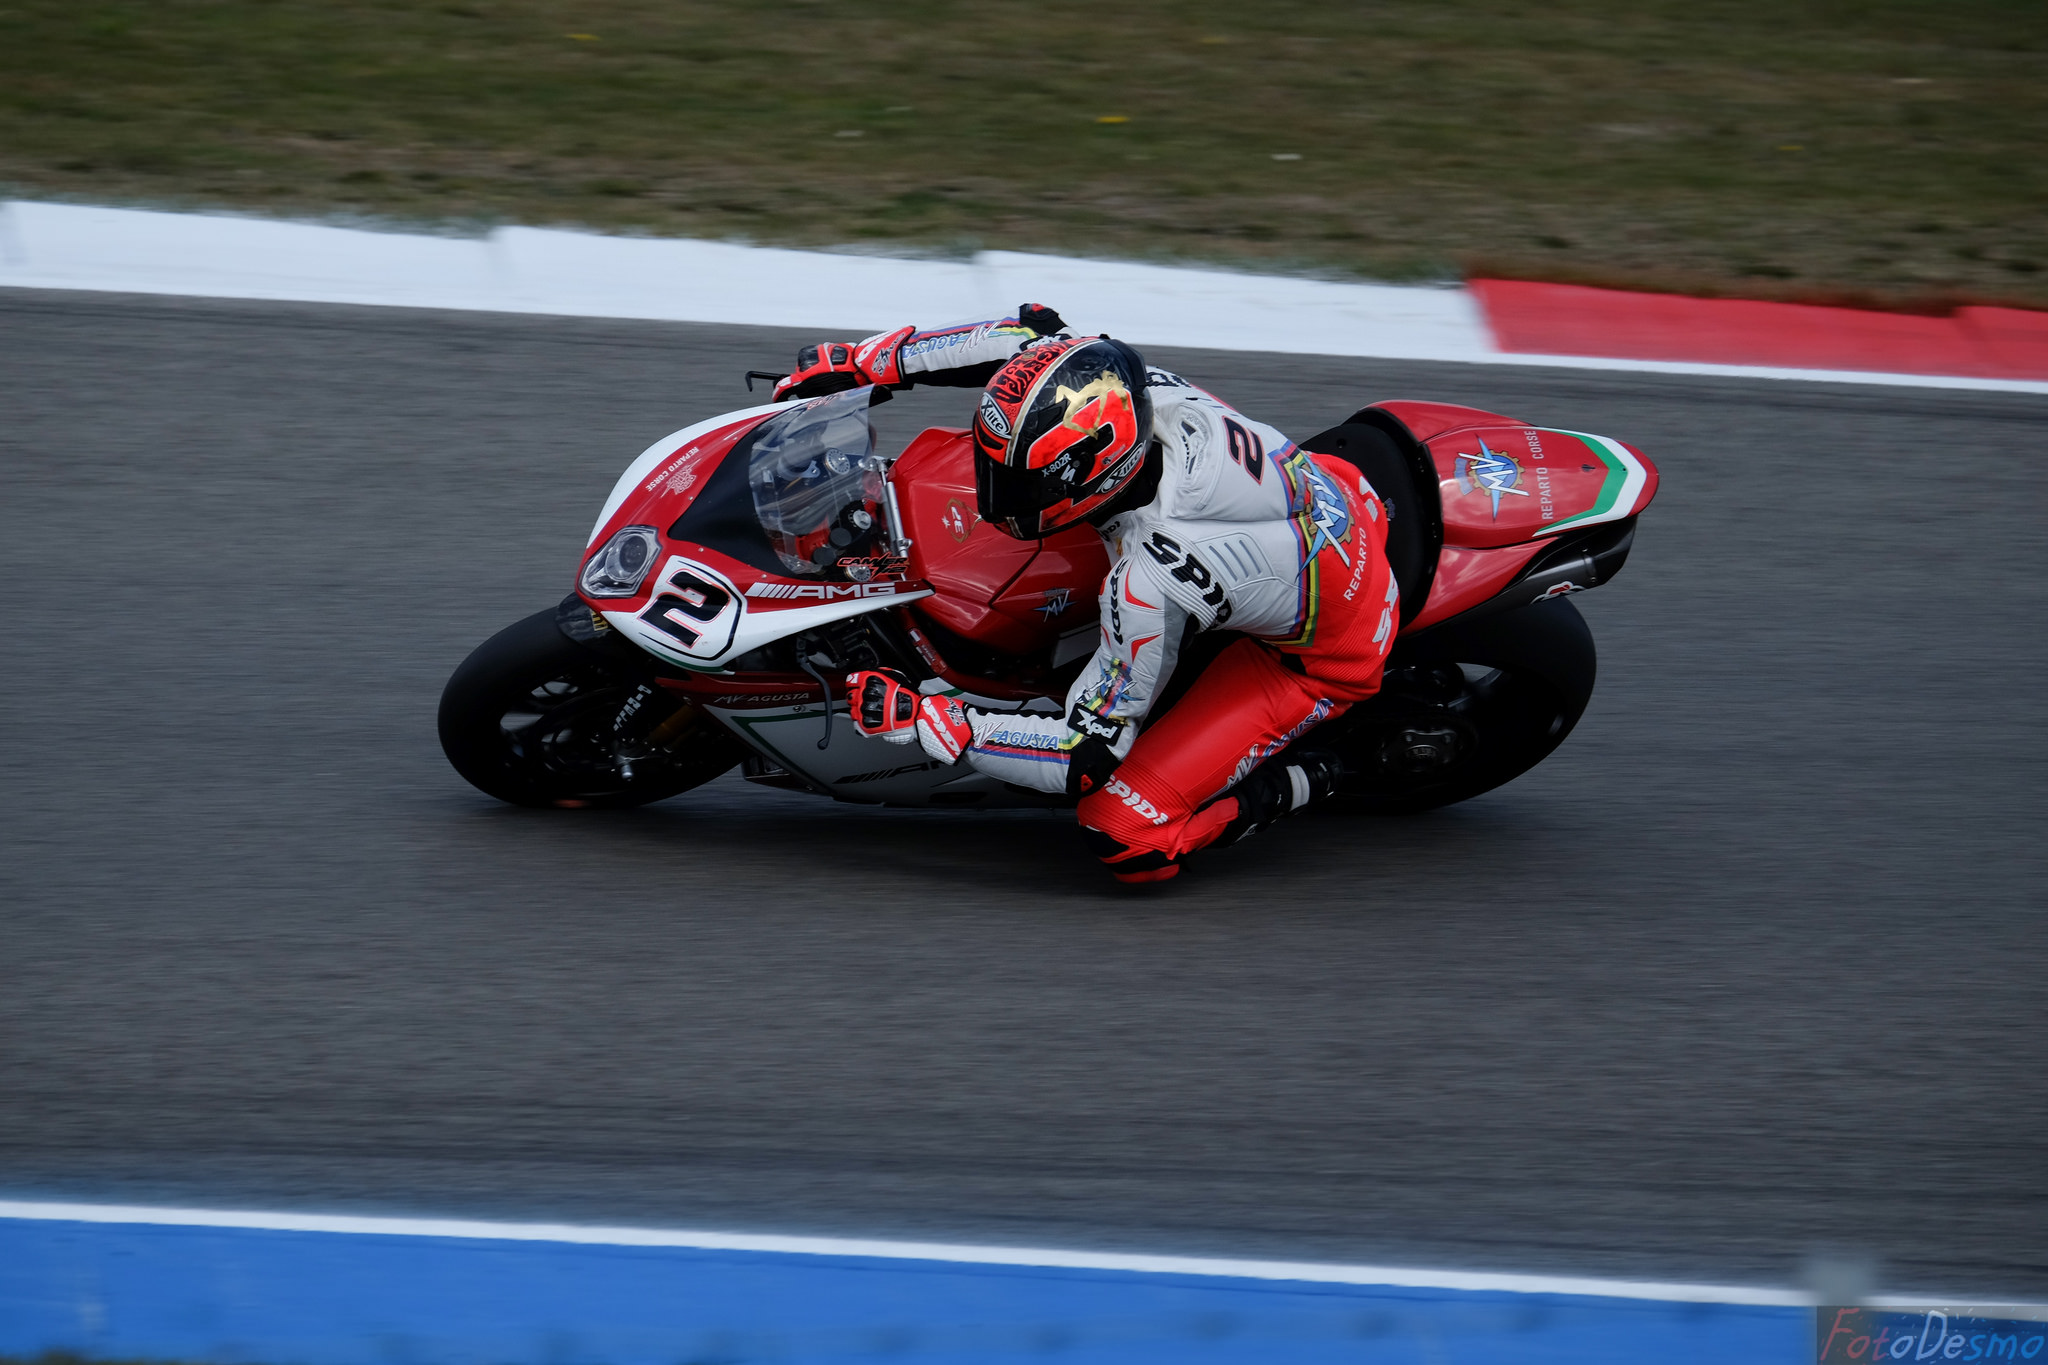 Leon Camier image credit duc zilla on flickr